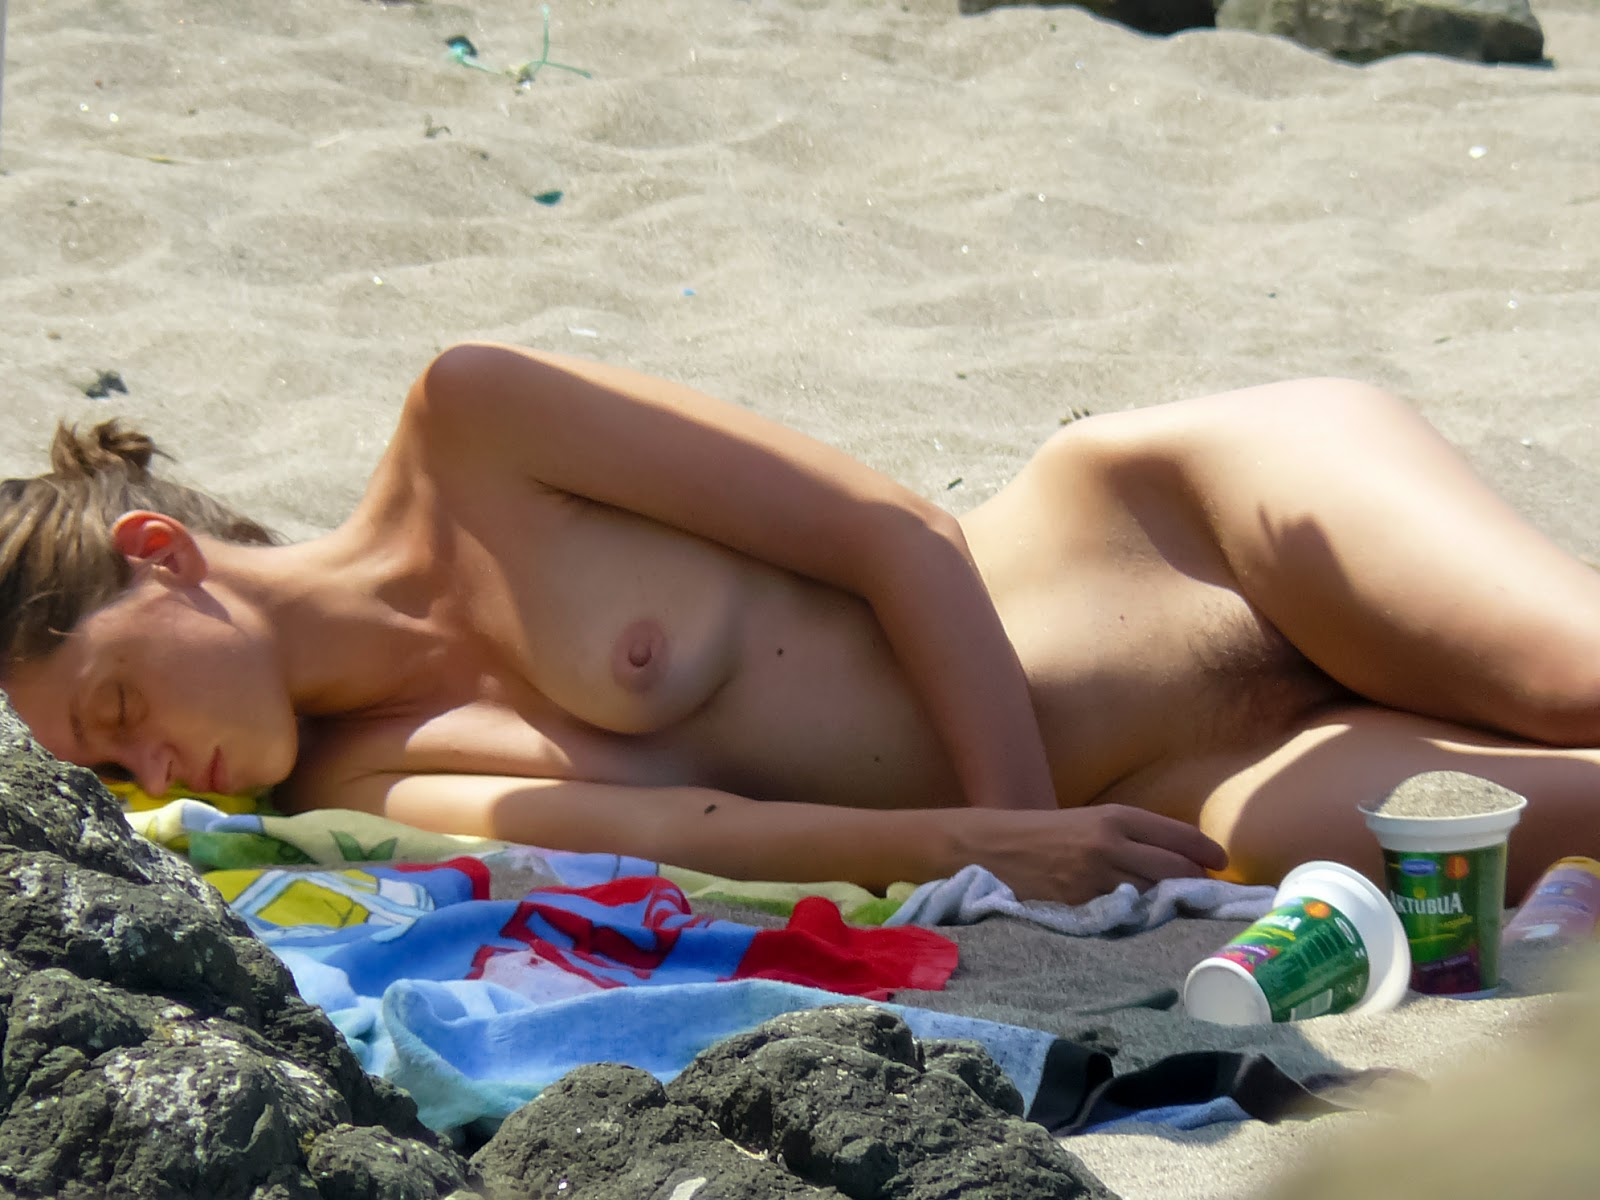 Amateur nudist milfs spy camera beach voyeur hidden 2